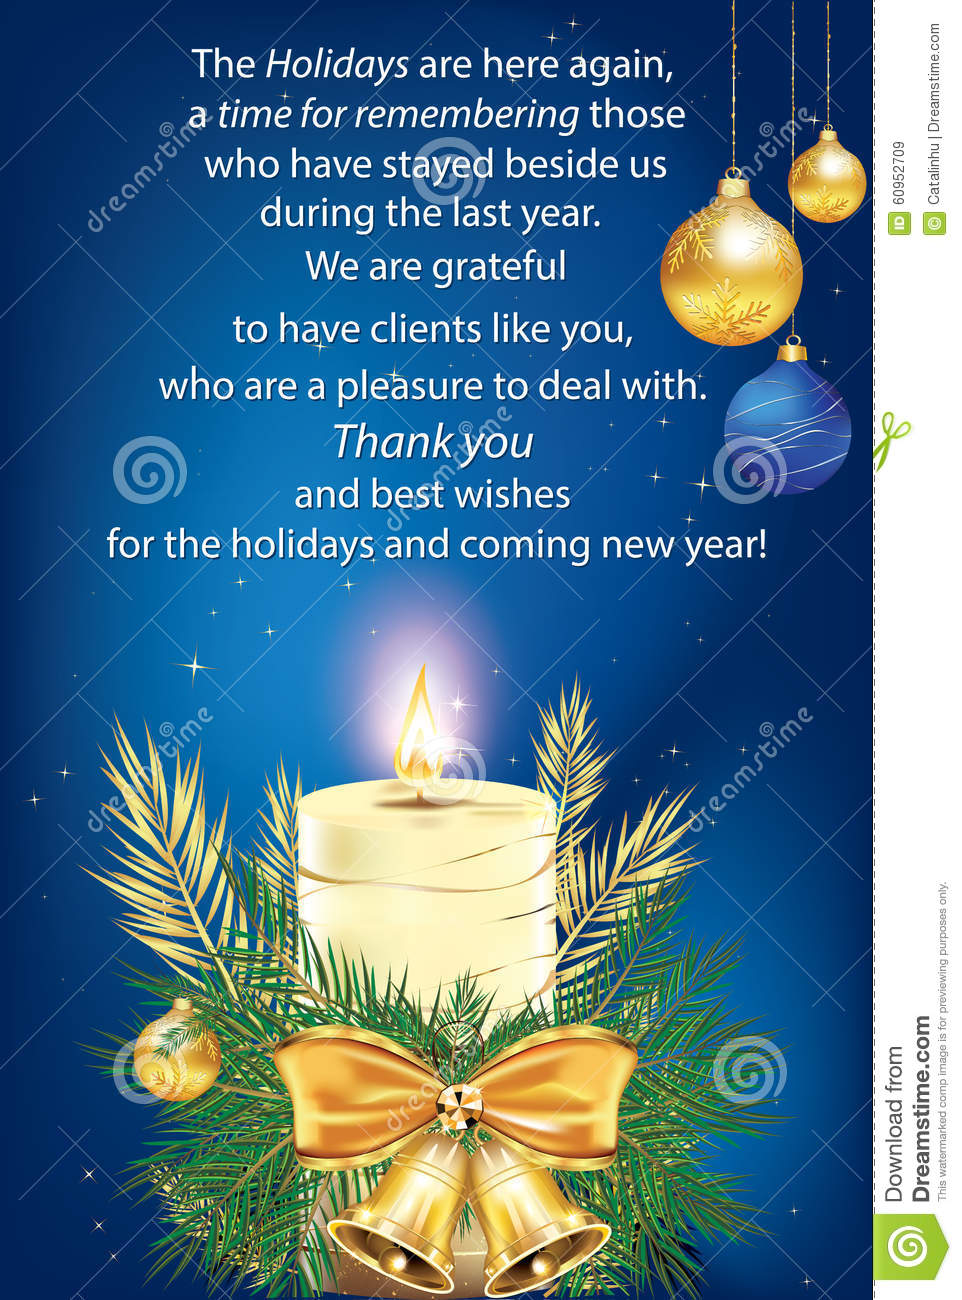 Thank You Blue Business Greeting Card Stock Illustration ...